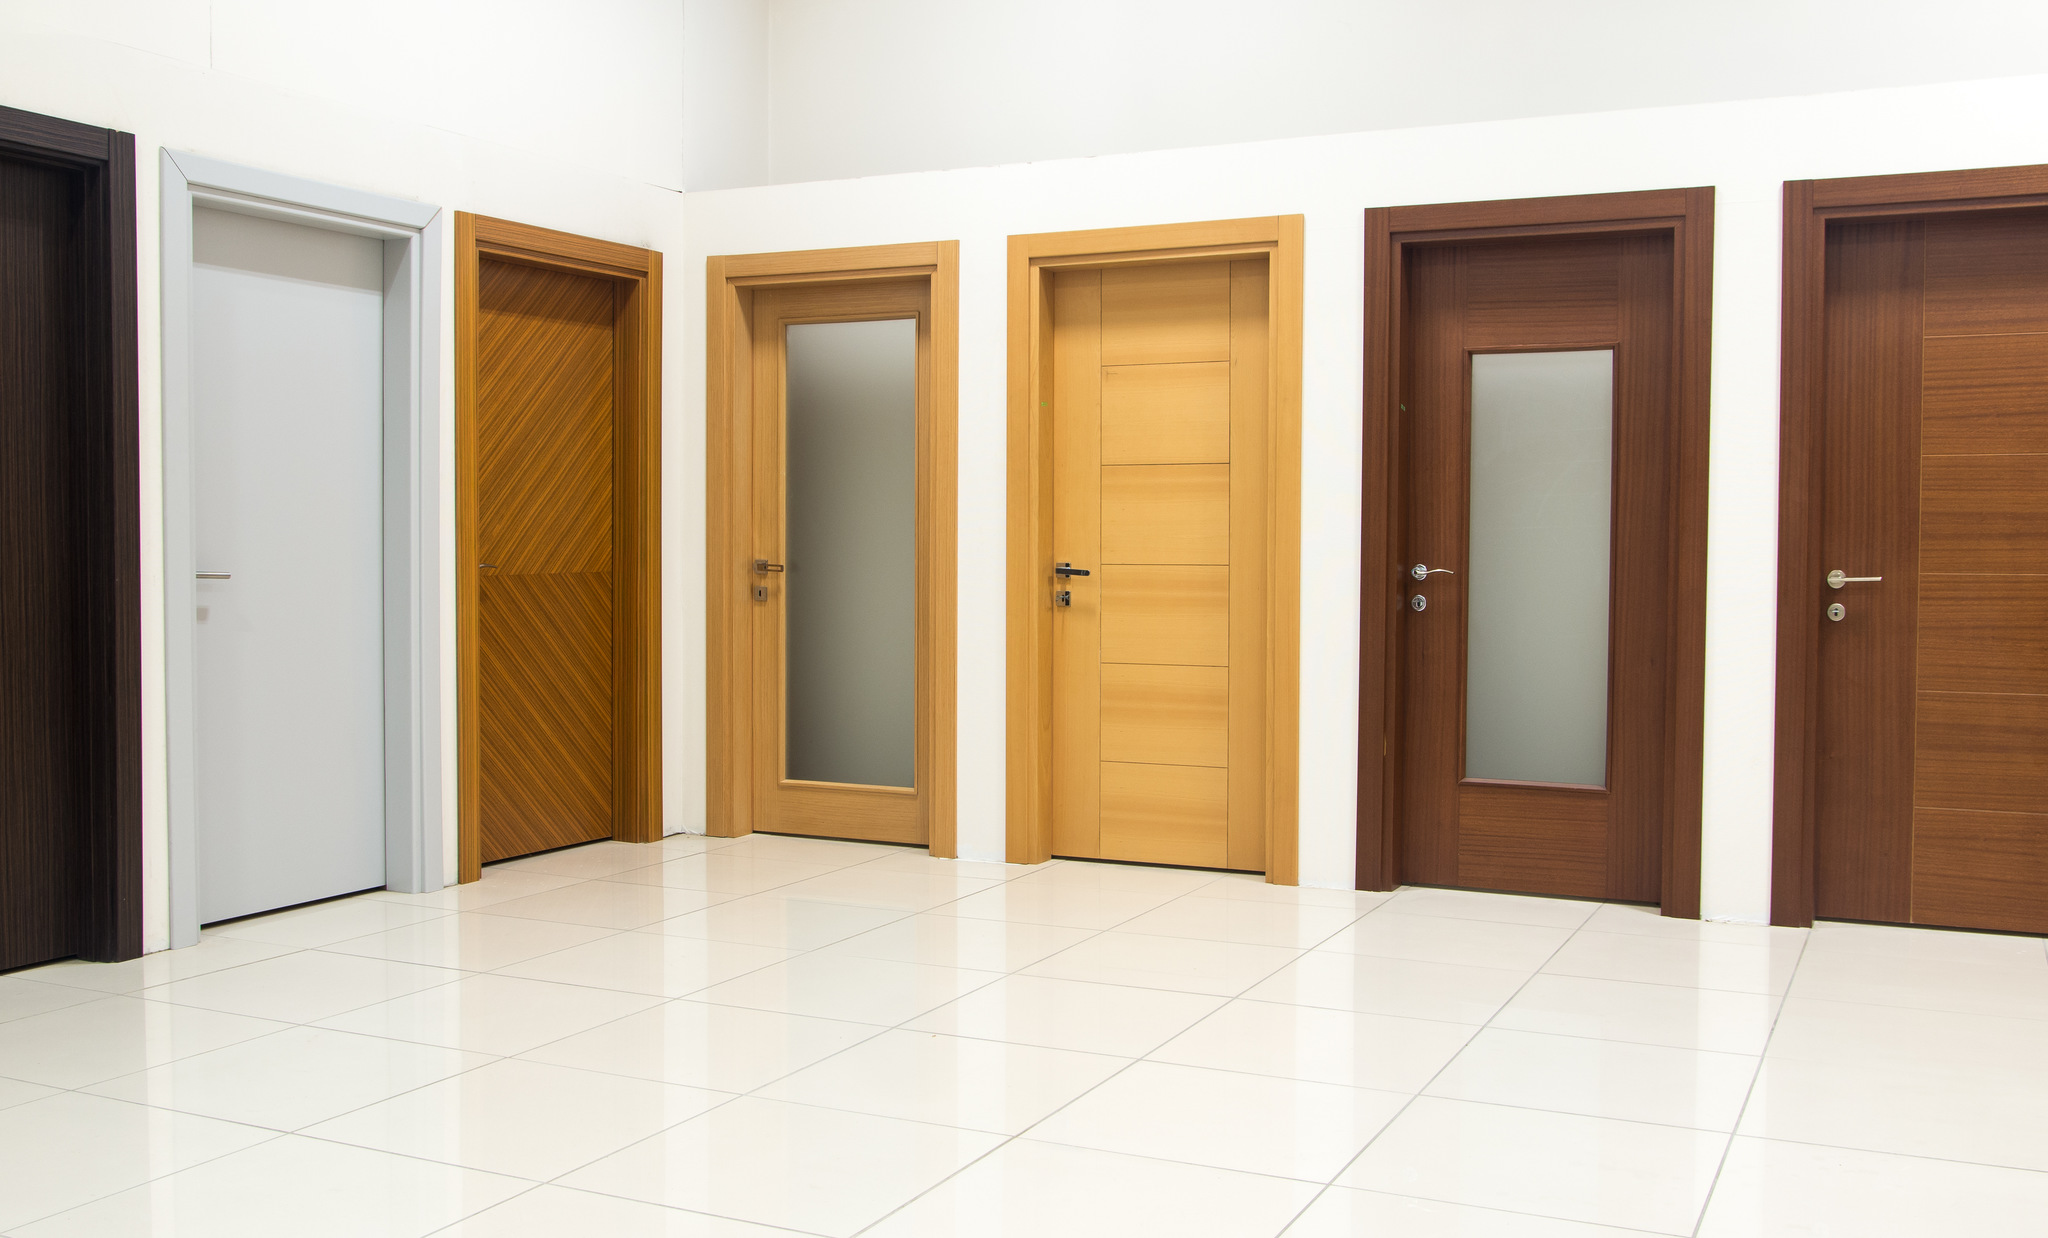 Shop Security Doors Homemart lagos nigeria